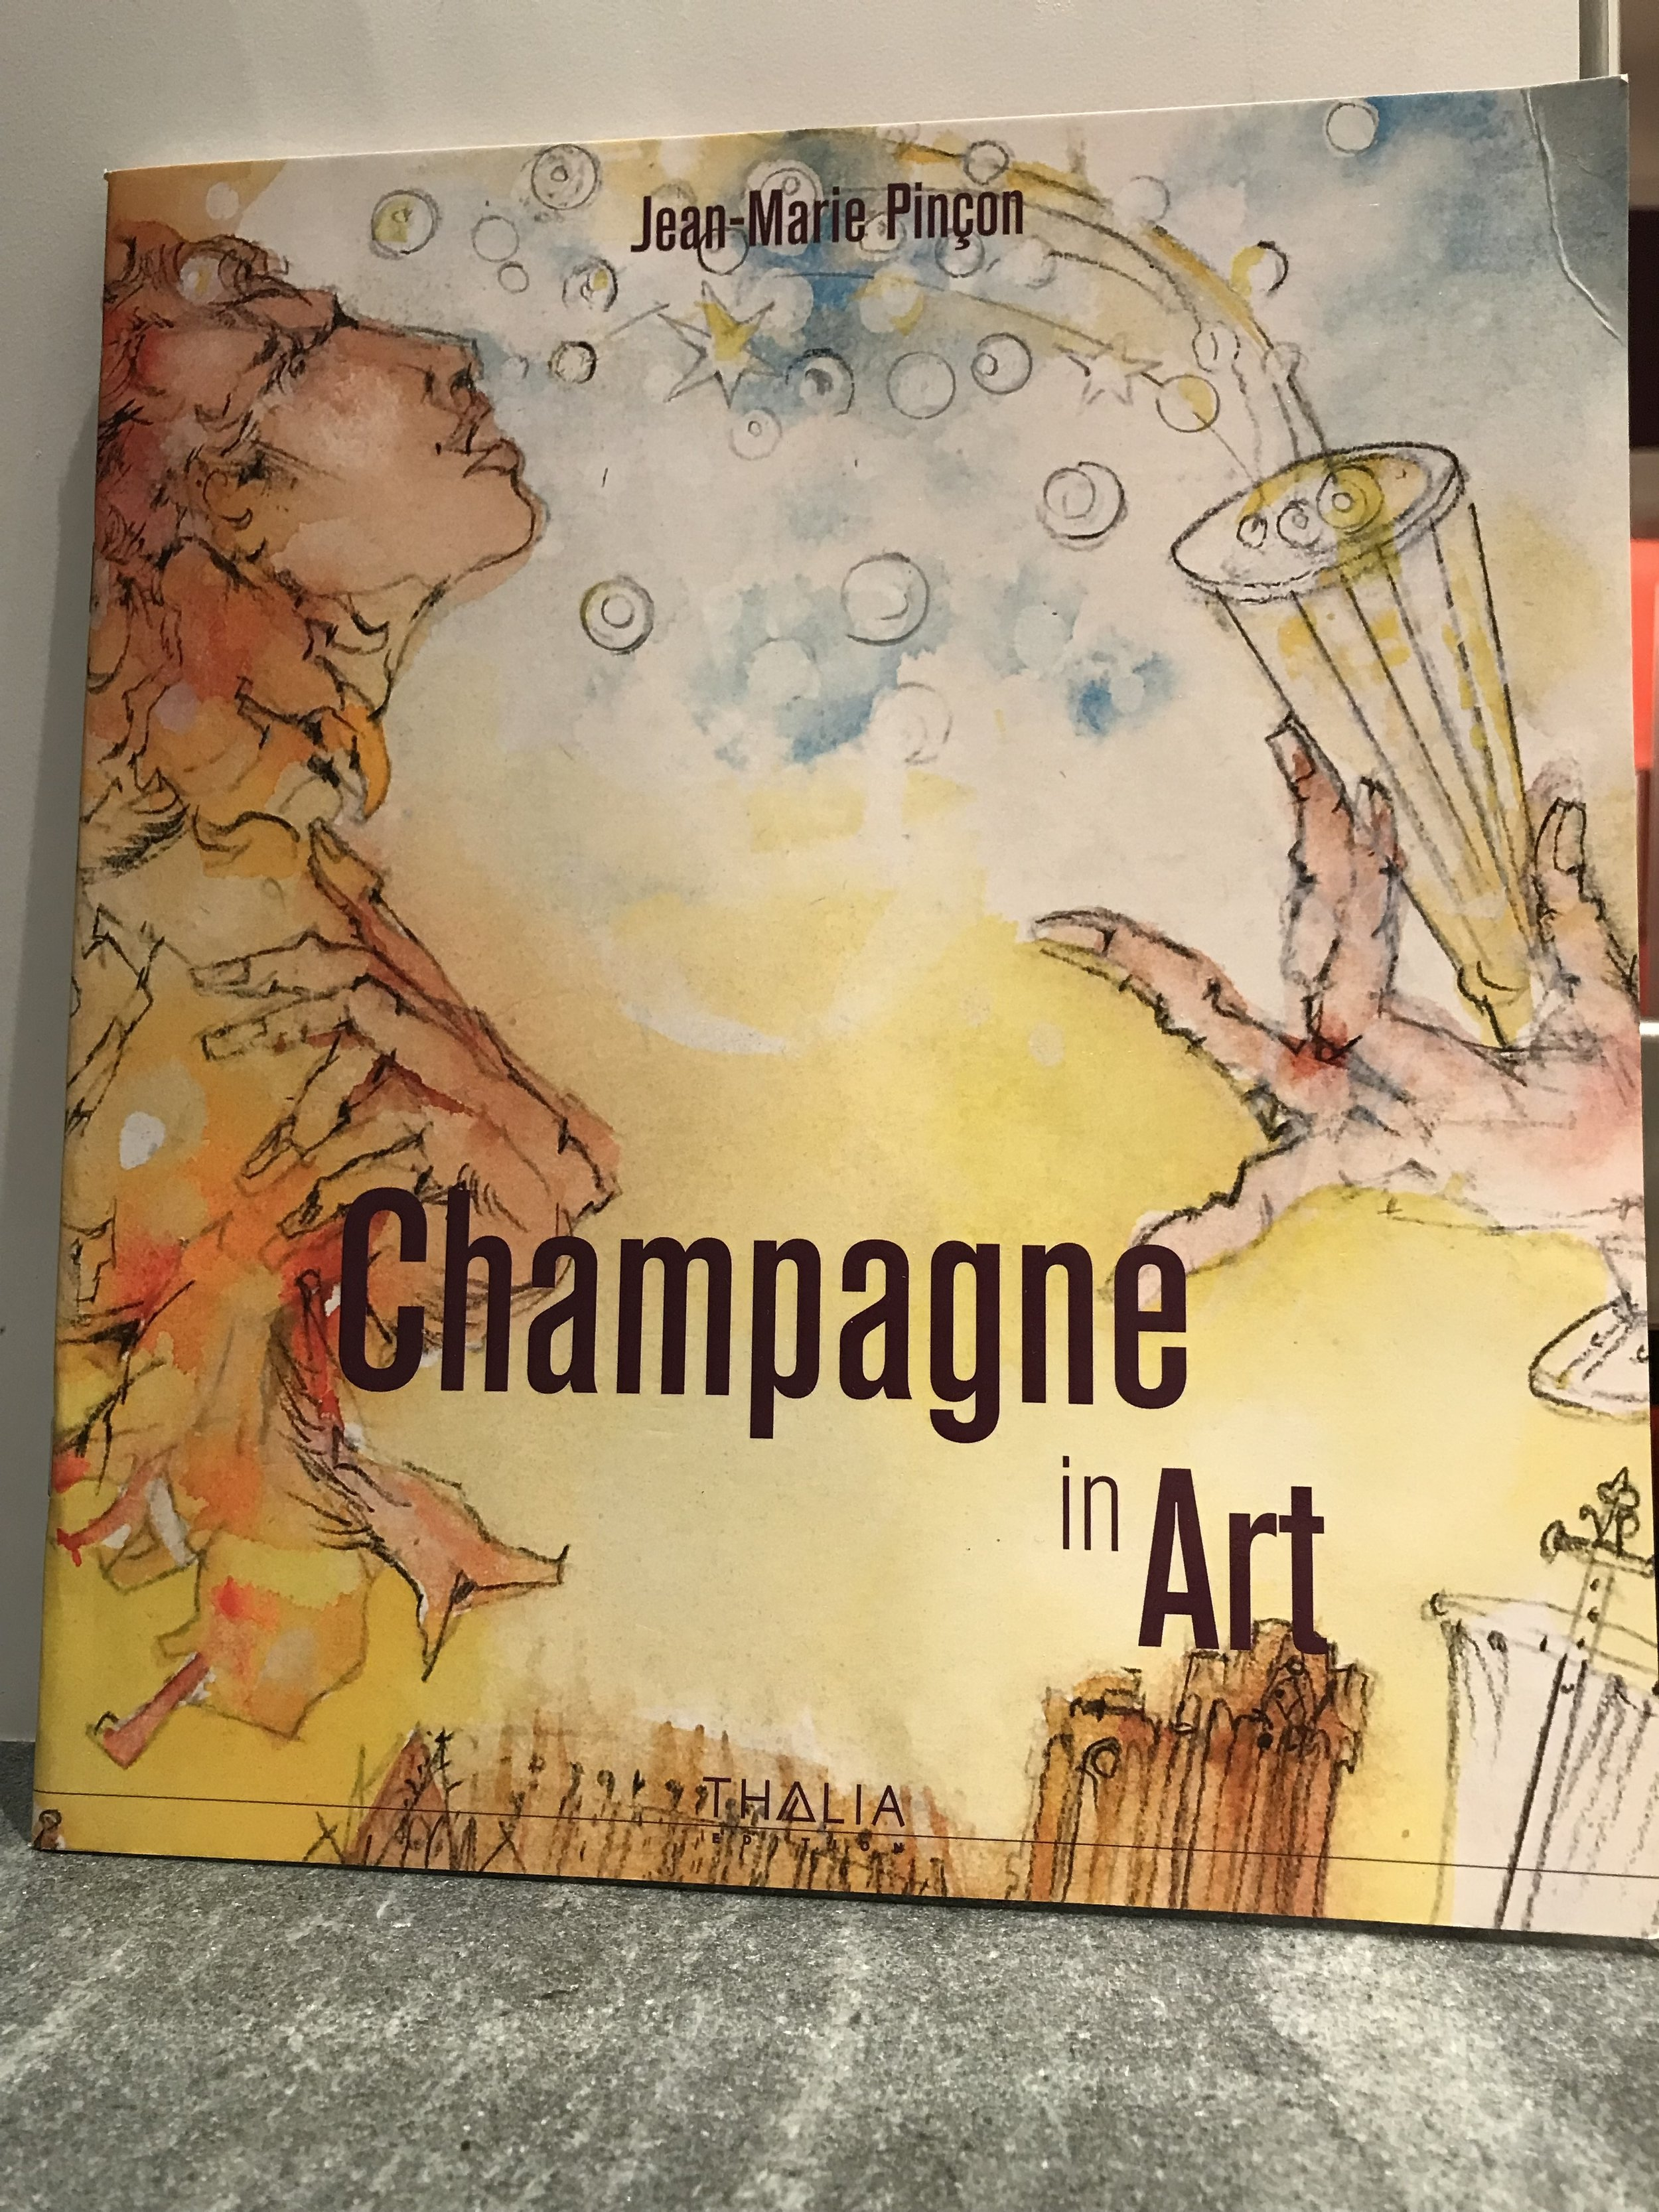 Each year, Bruno comissions an artist to design the labels of his vintage champagne. He gives the artist one or two words which reflect the characteristics of that particular year as inspiration for the art.